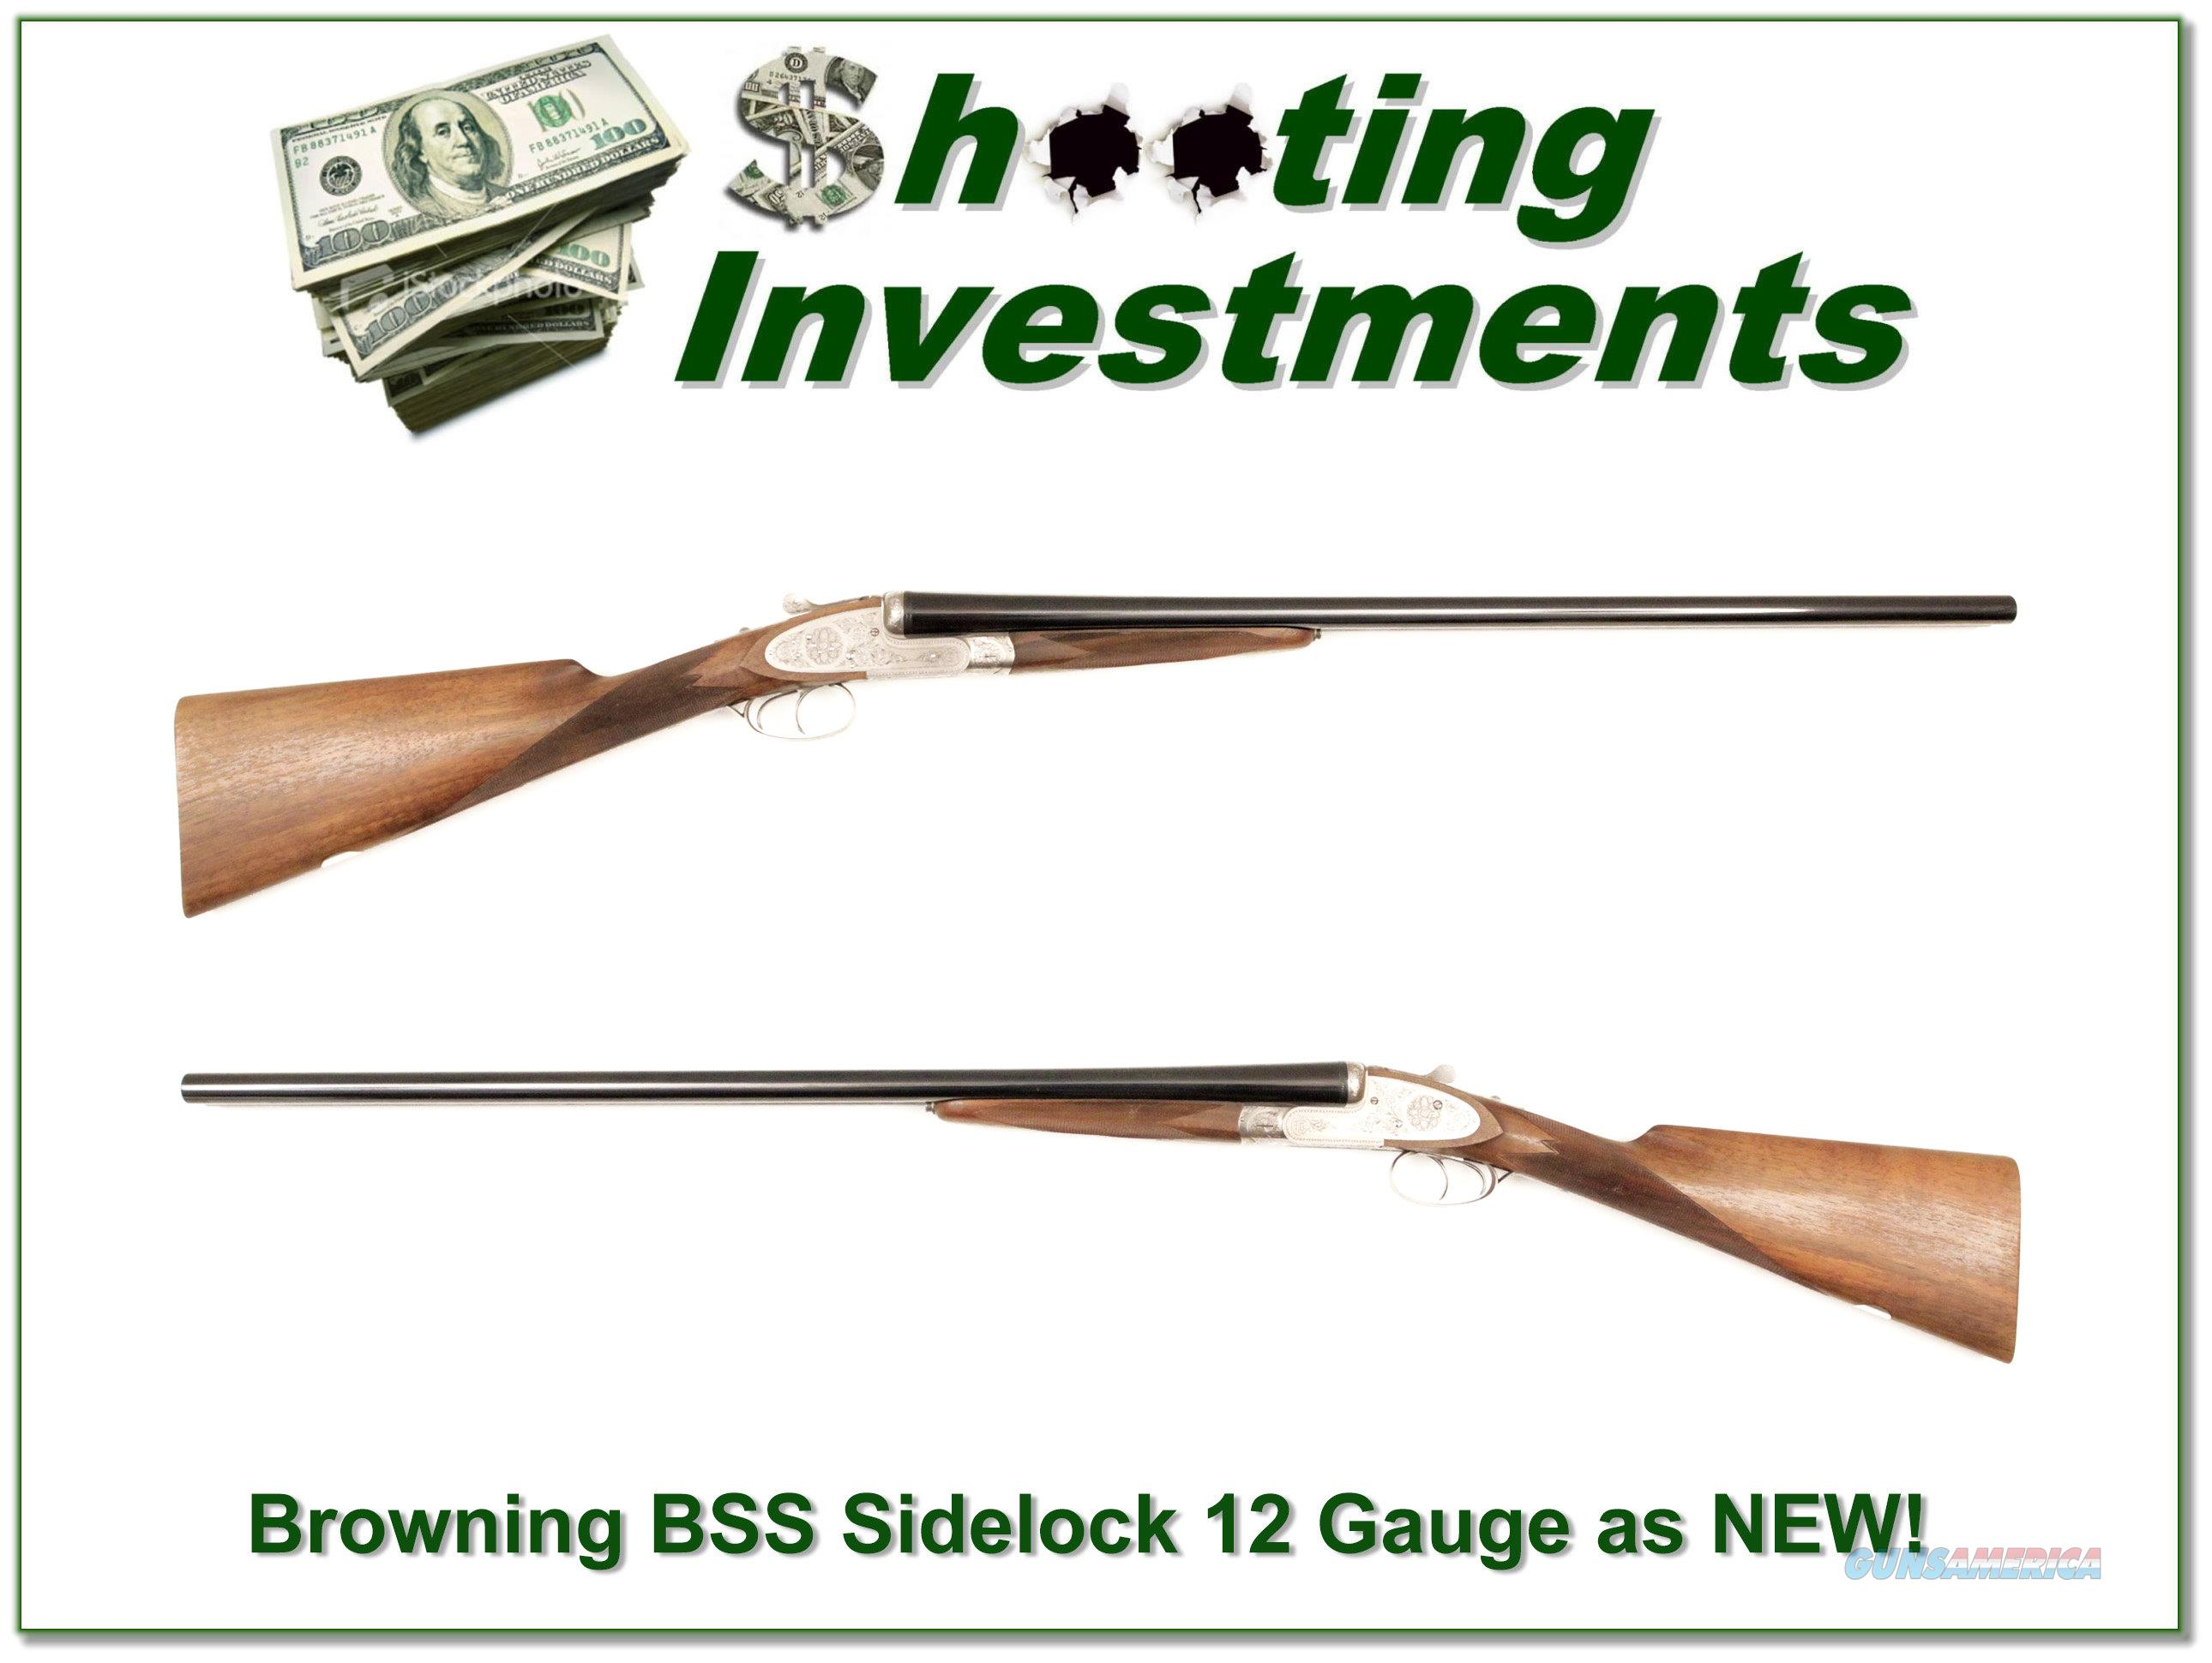 Browning BSS Sidelock 12 Gauge 28in as new!  Guns > Shotguns > Browning Shotguns > Side by Sides